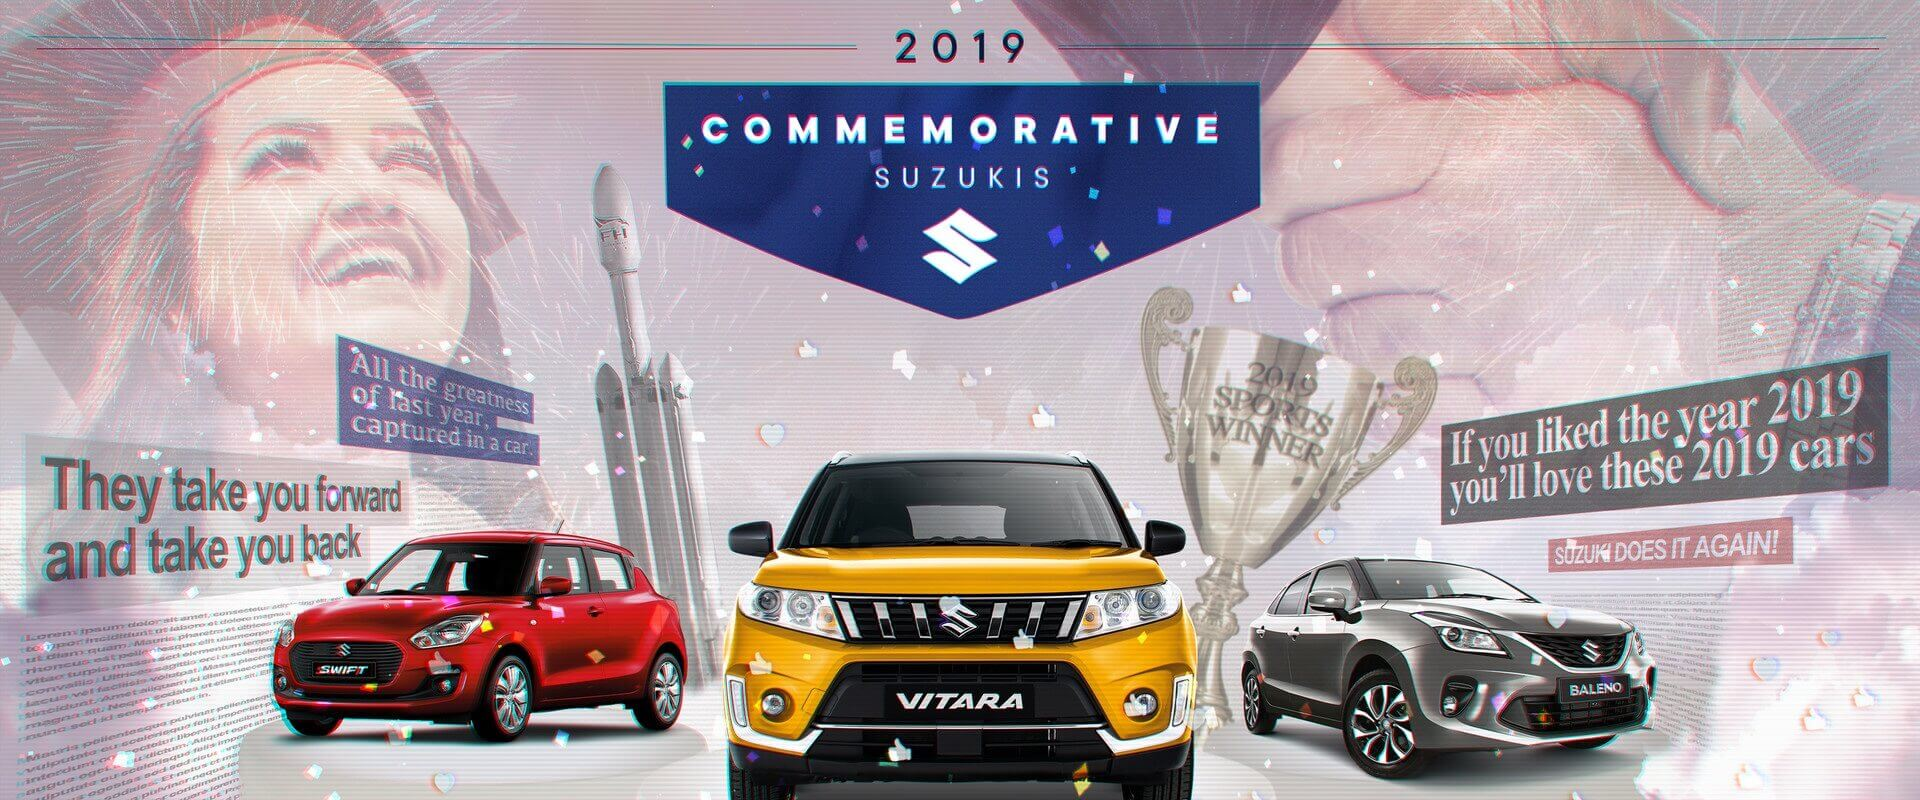 2019 Commemorative Suzuki's